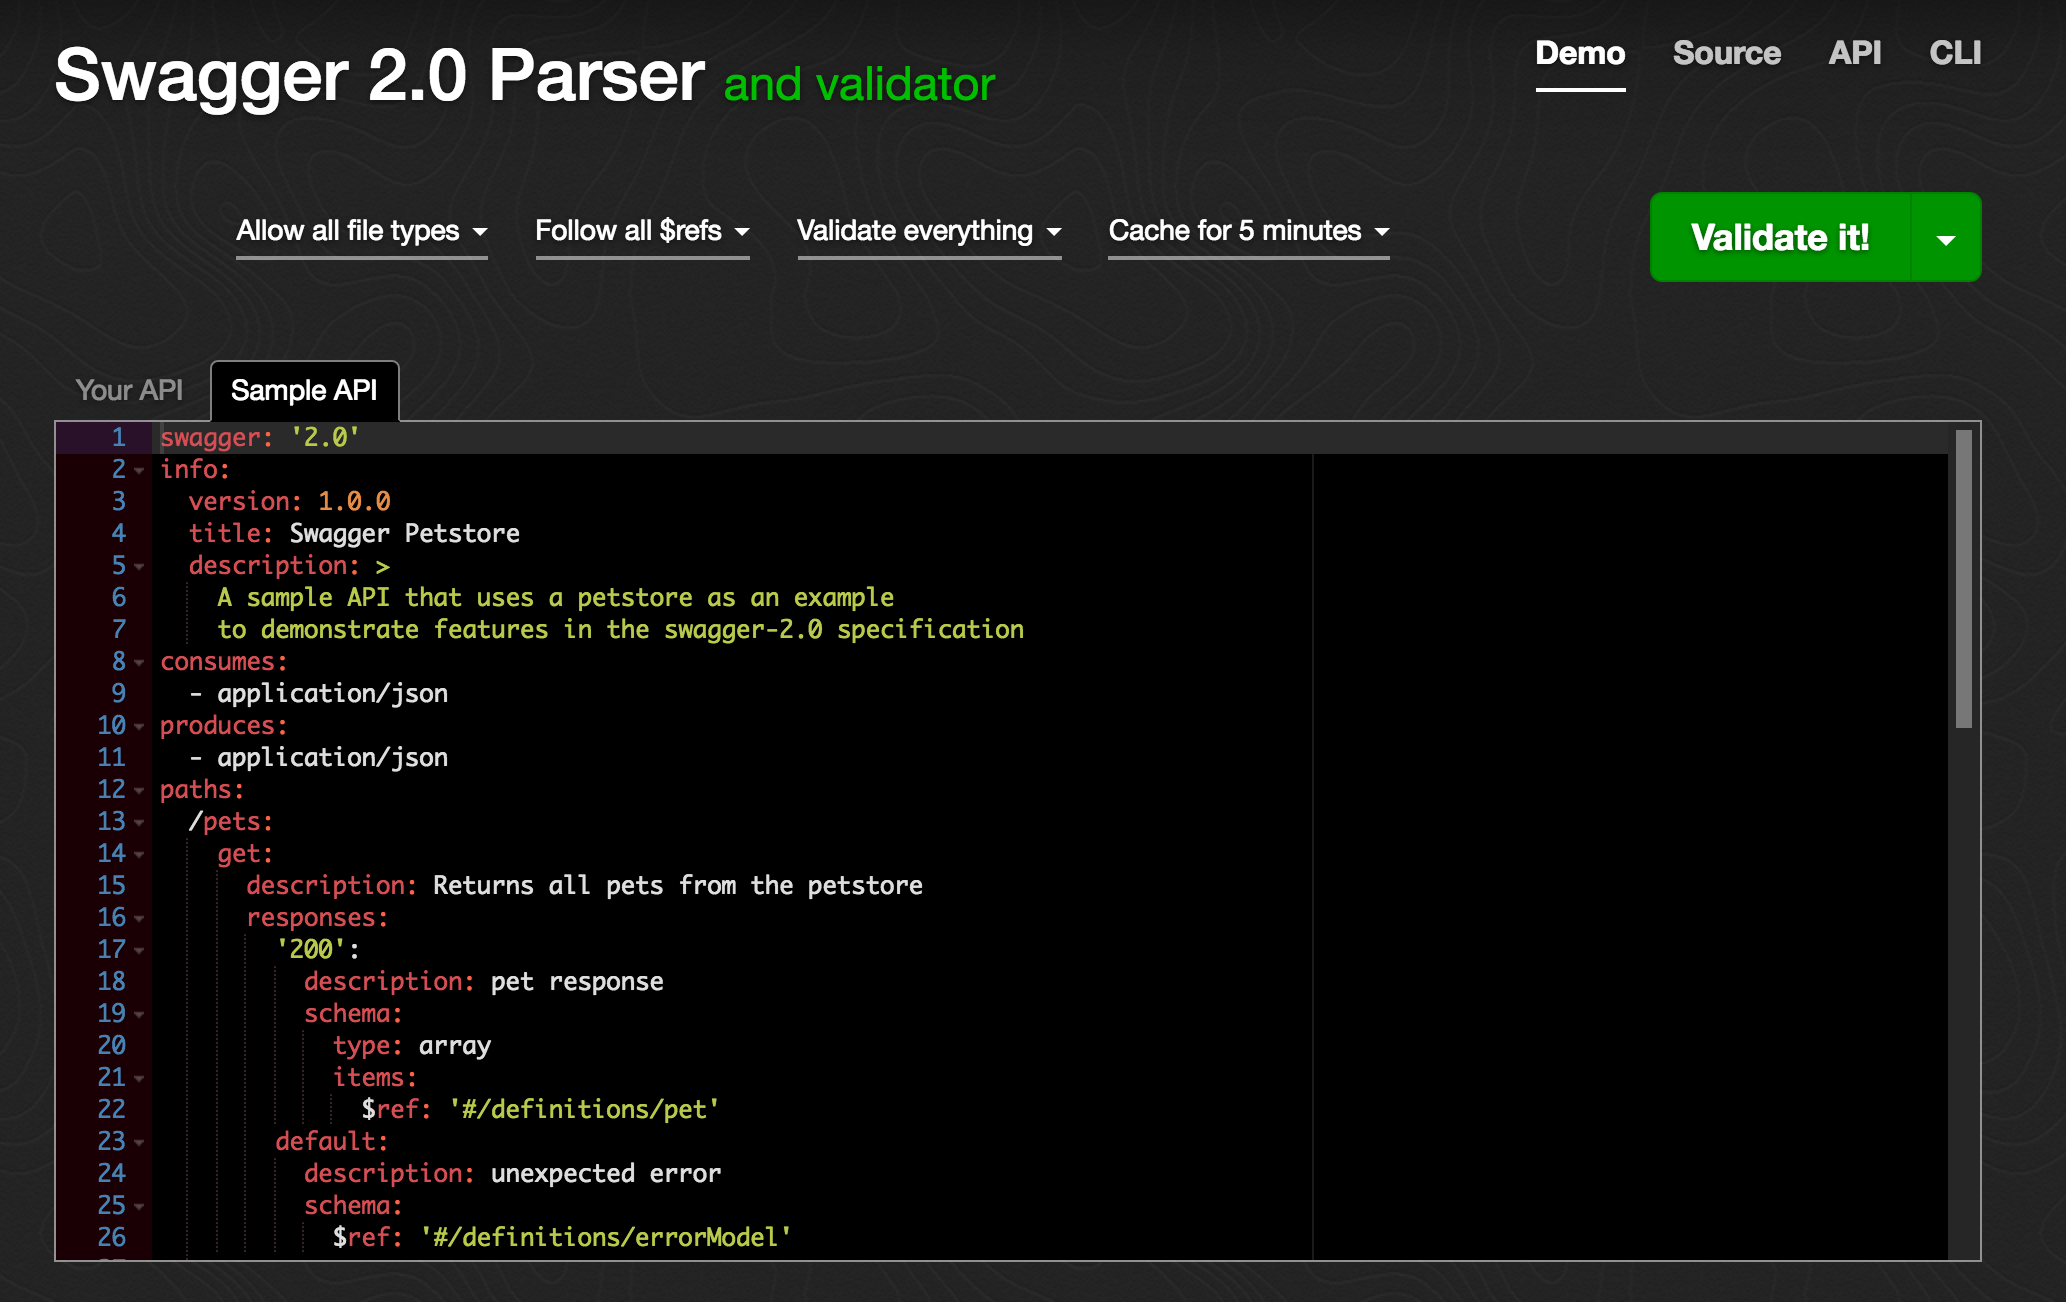 swagger-parser-001